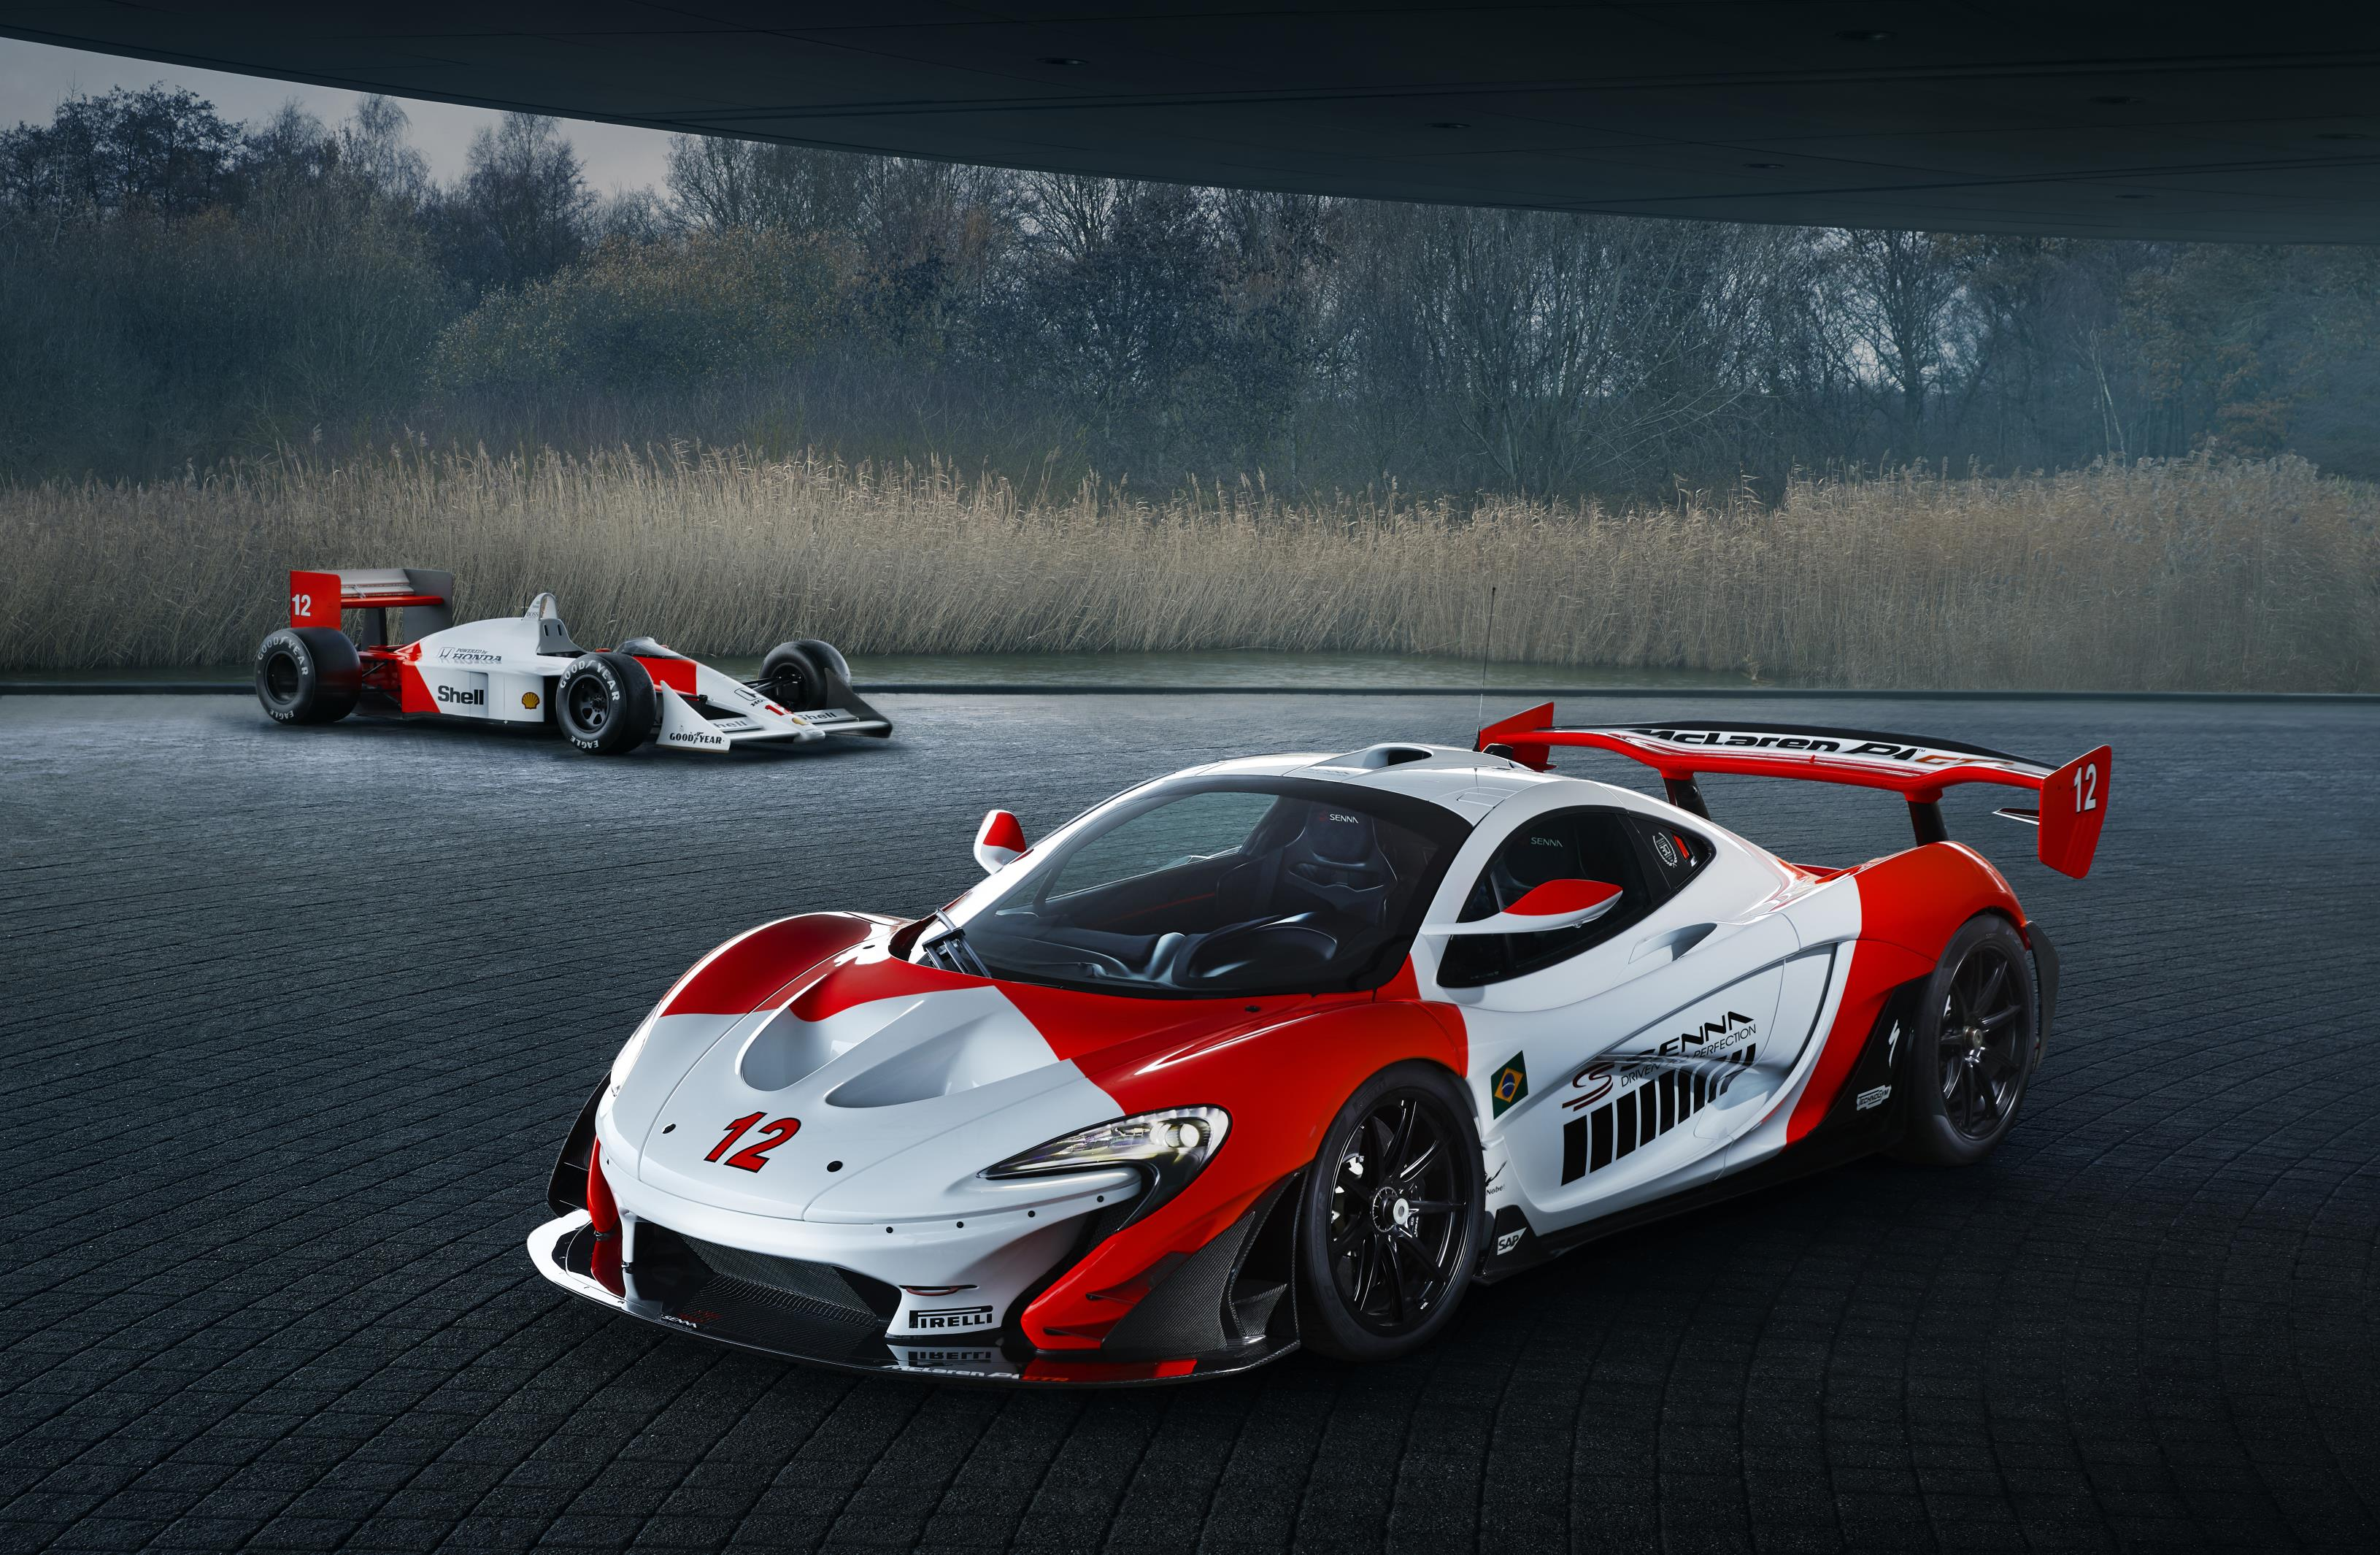 McLaren finishes the unique P1 GTR Beco hypercar wearing Ayrton Senna's colors